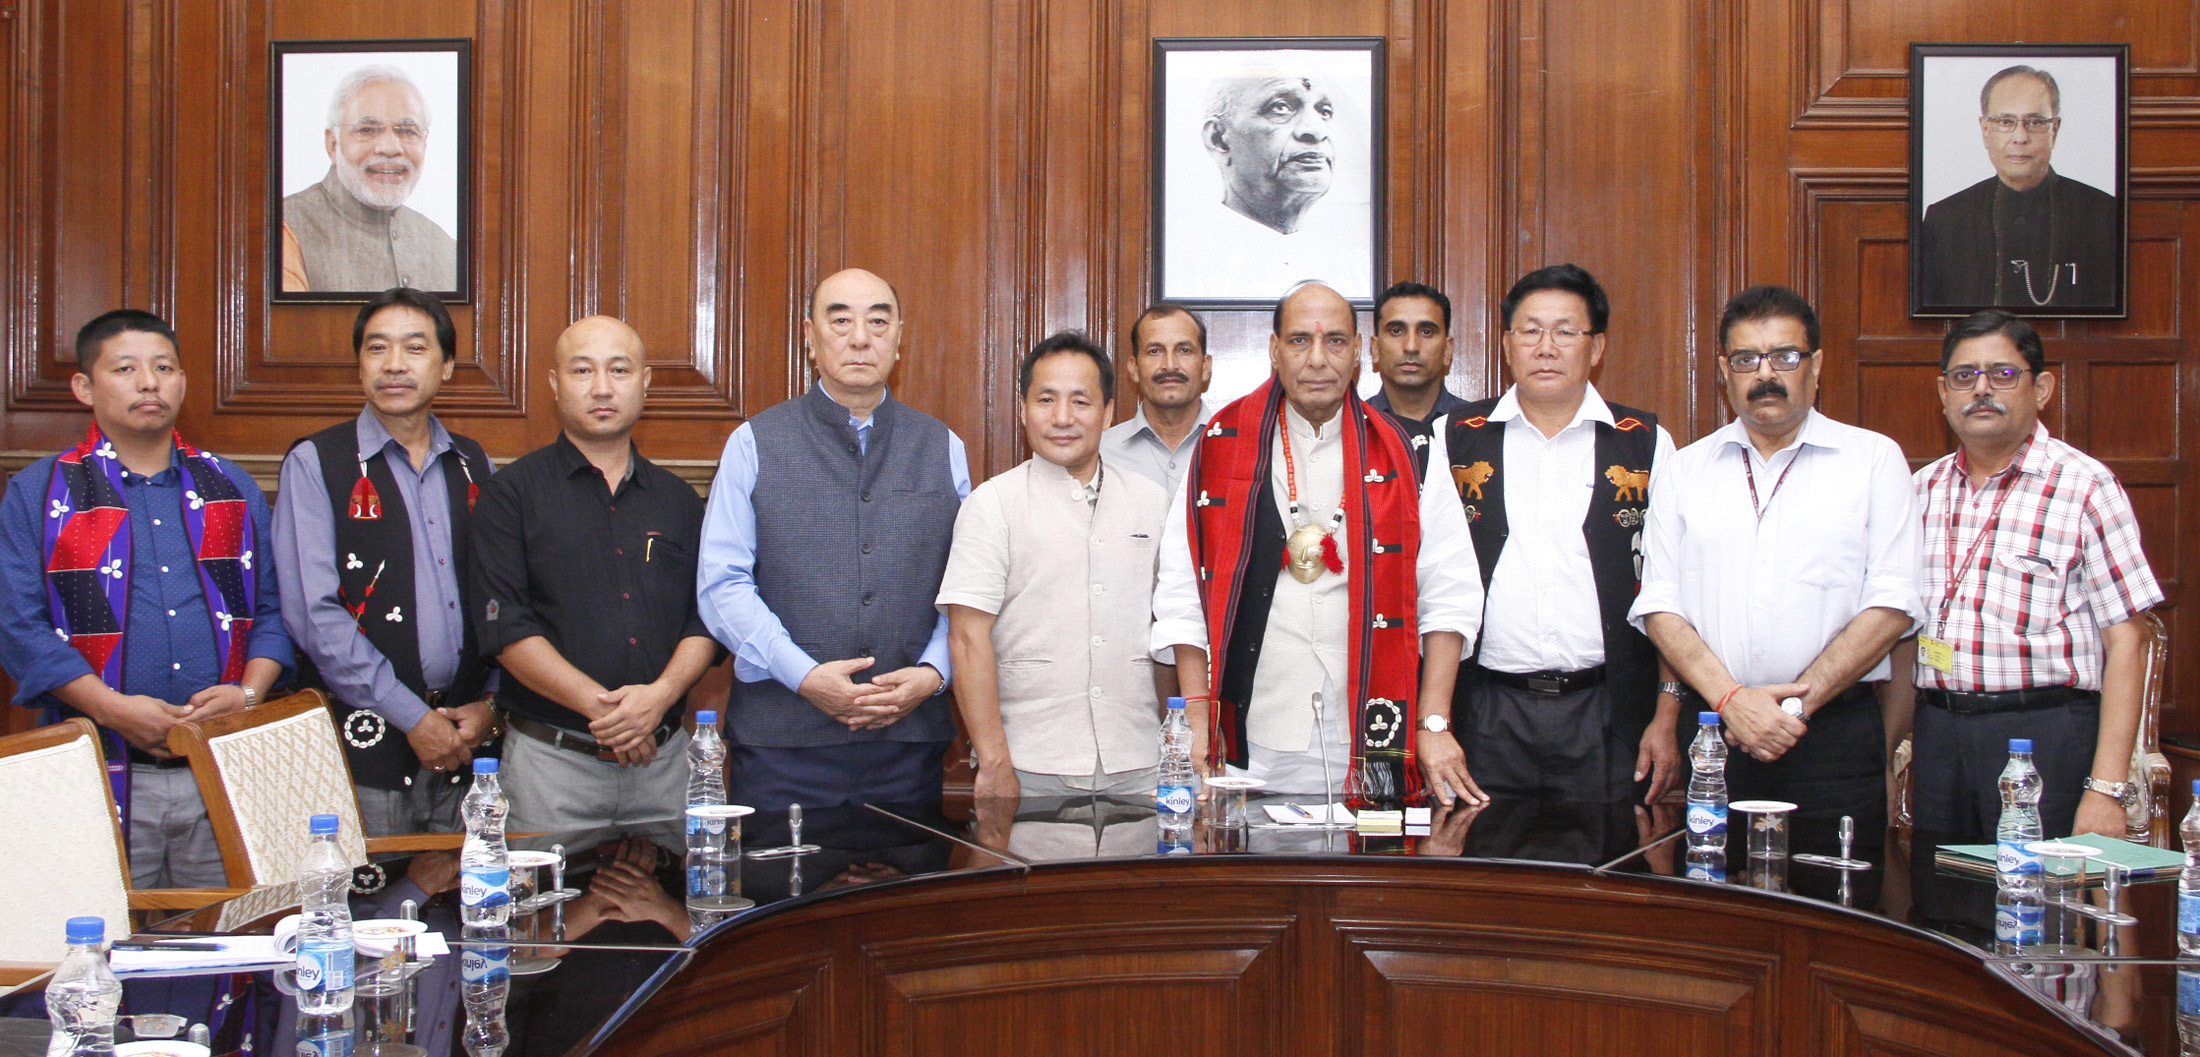 A group of Eastern Nagaland People's Organisation (ENPO) leaders calling on the Union Home Minister, Shri Rajnath Singh, in New Delhi on August 24, 2015.  The Secretary (Internal Security), Shri Ashok Prasad and the Senior MHA officials are also seen.